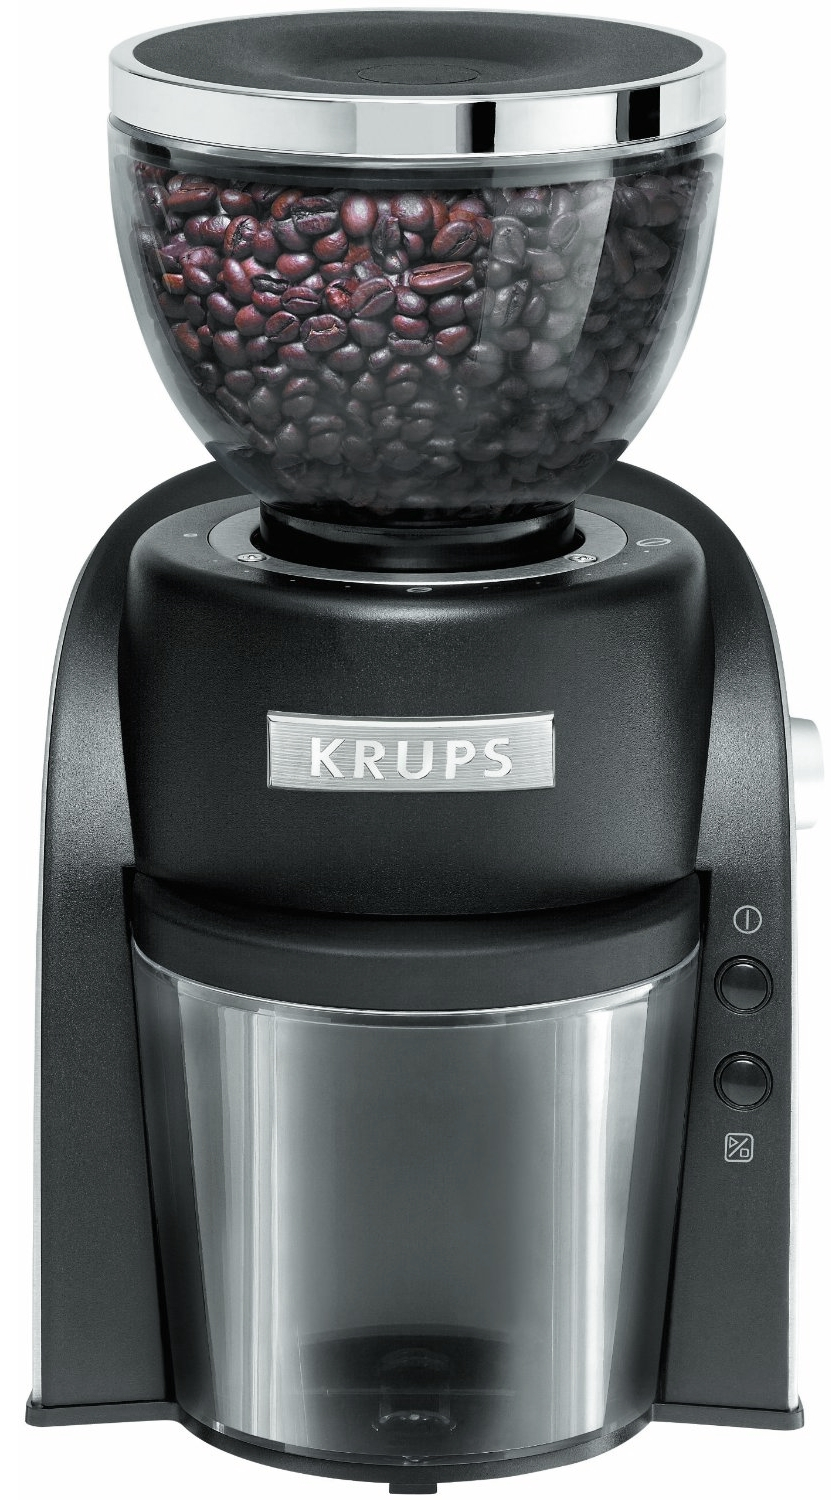 Krups Black Conical Burr Grinder